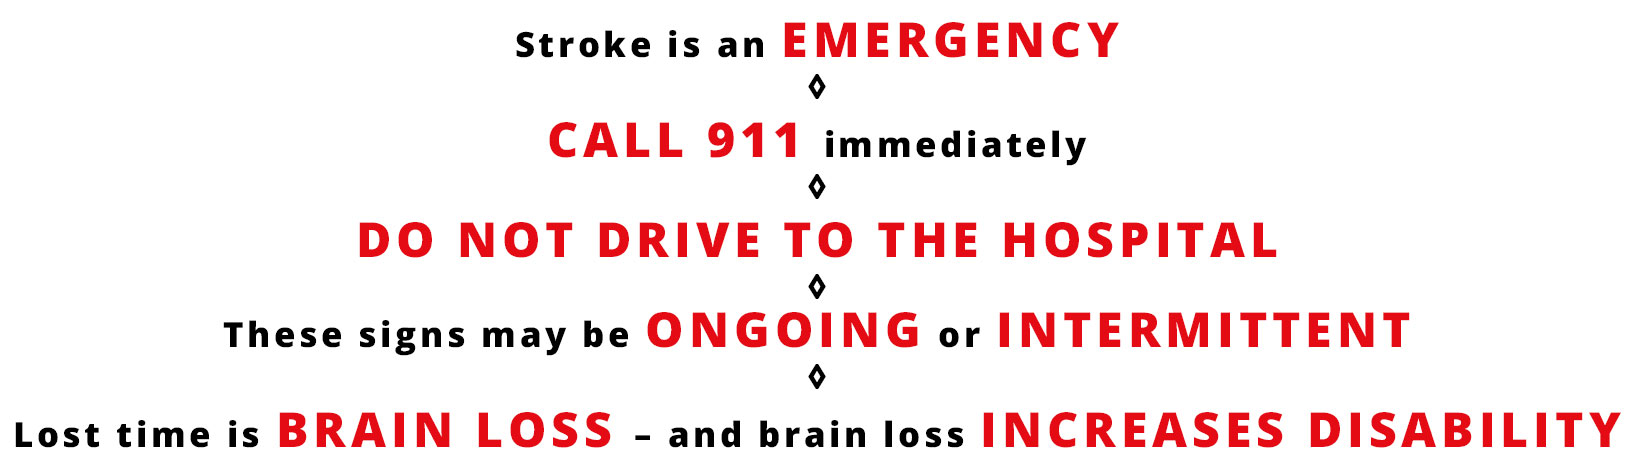 What to do in a STROKE Emergency | Stroke Recovery Foundation